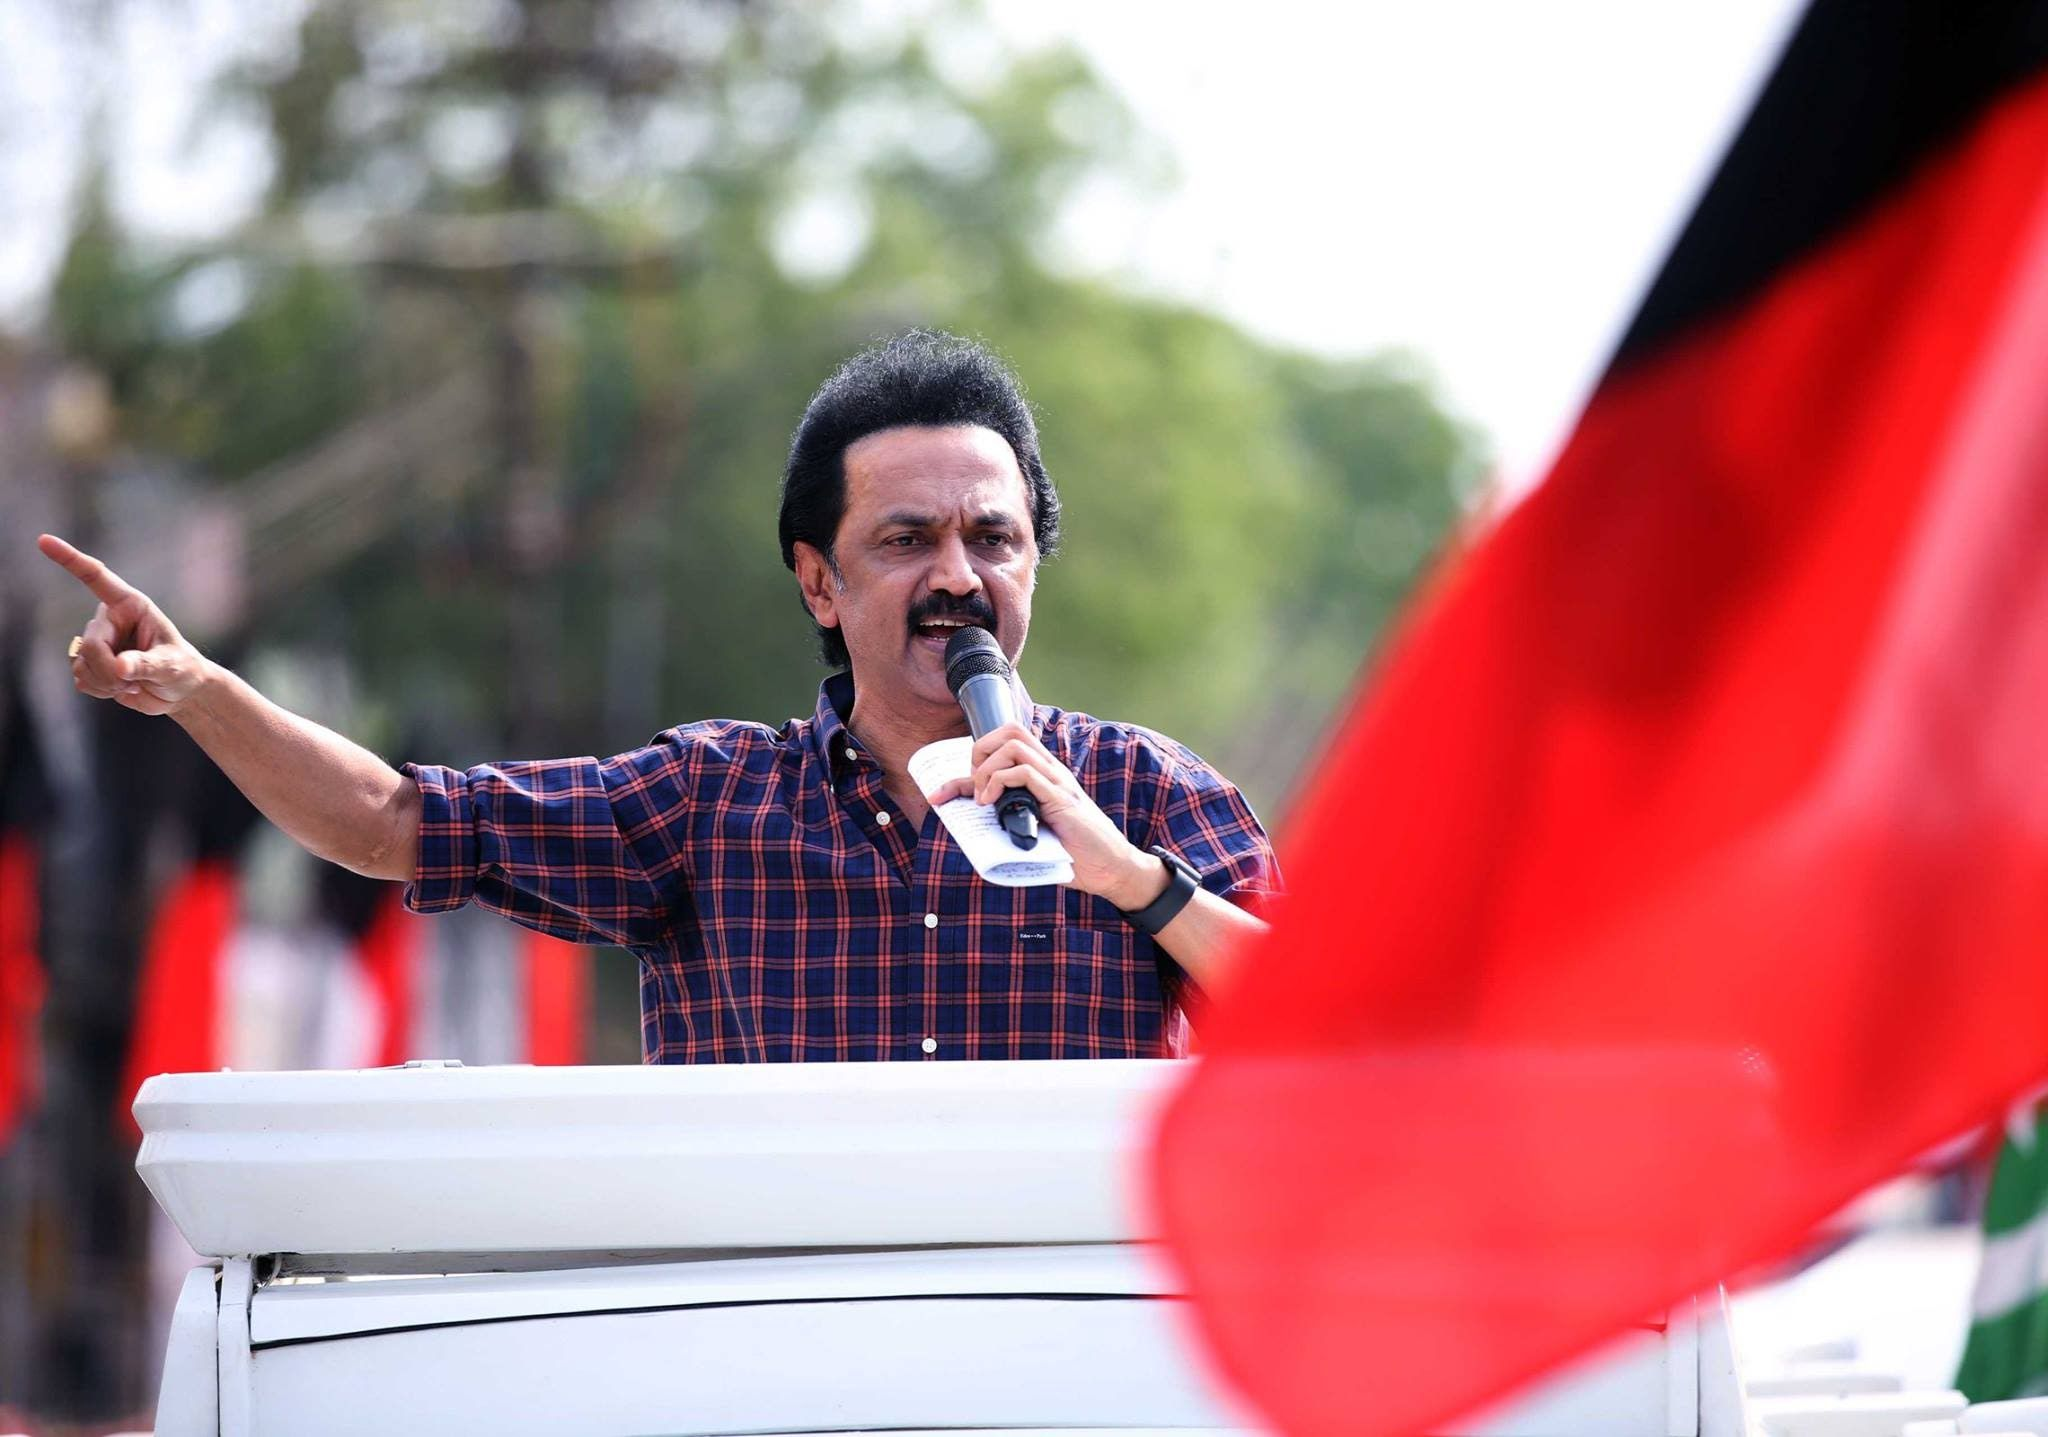 M. K. Stalin, he is an Indian Politician from Tamil Nadu